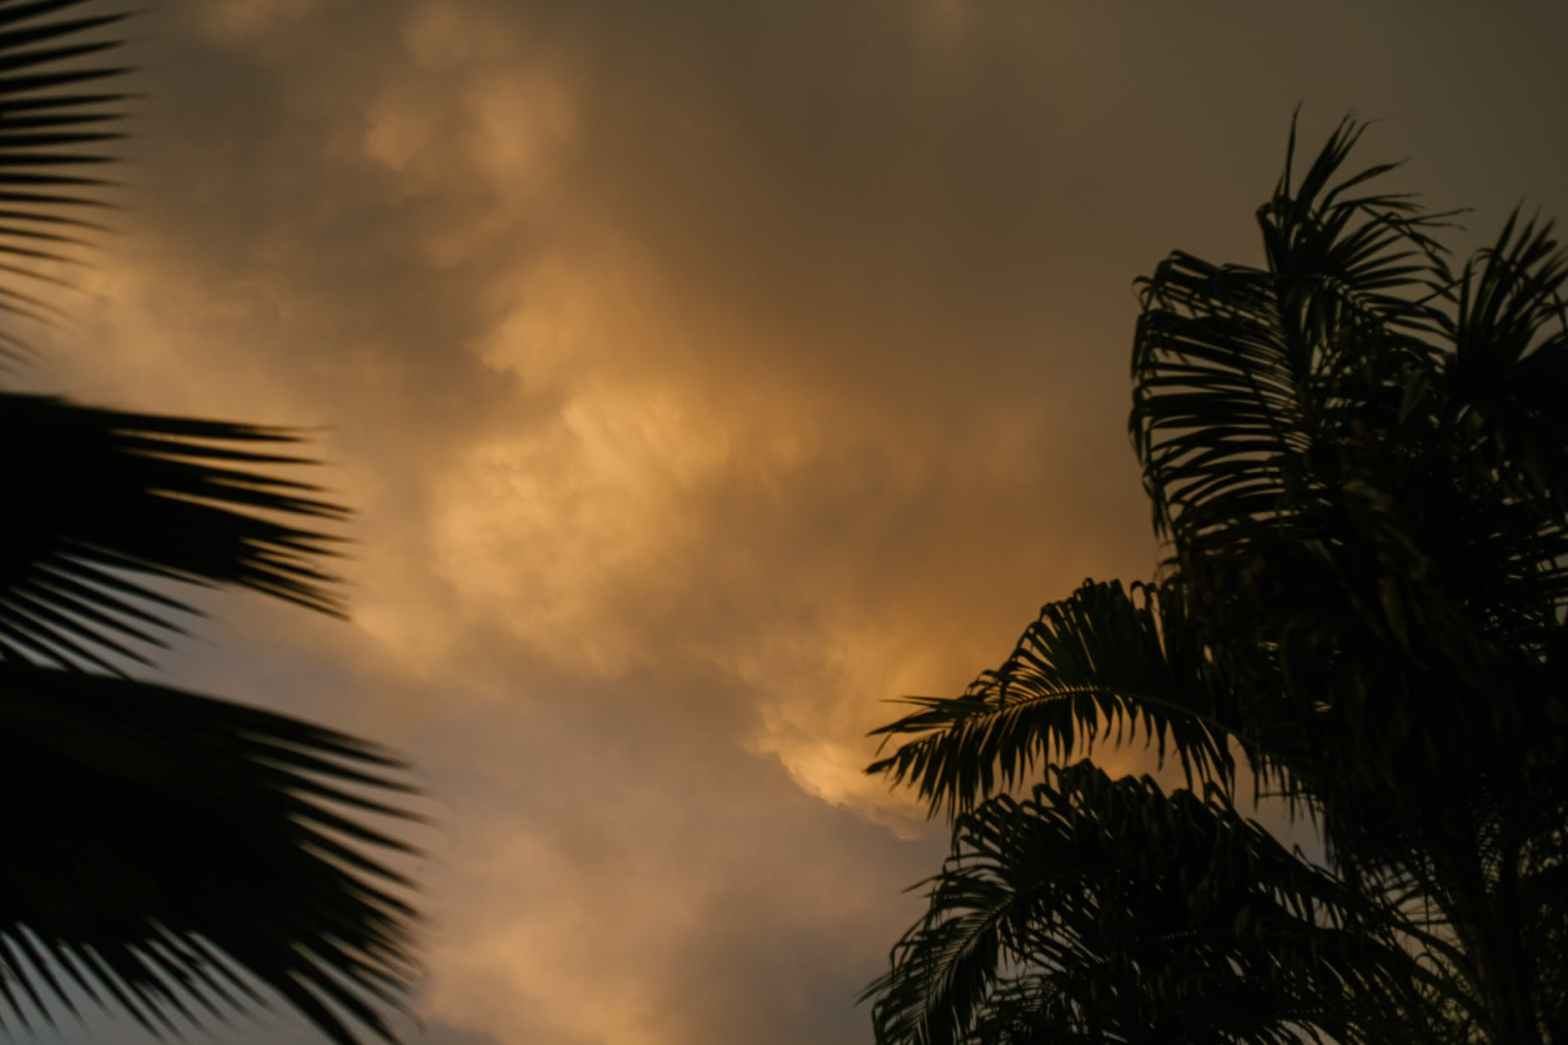 palm leaves against sunset sky